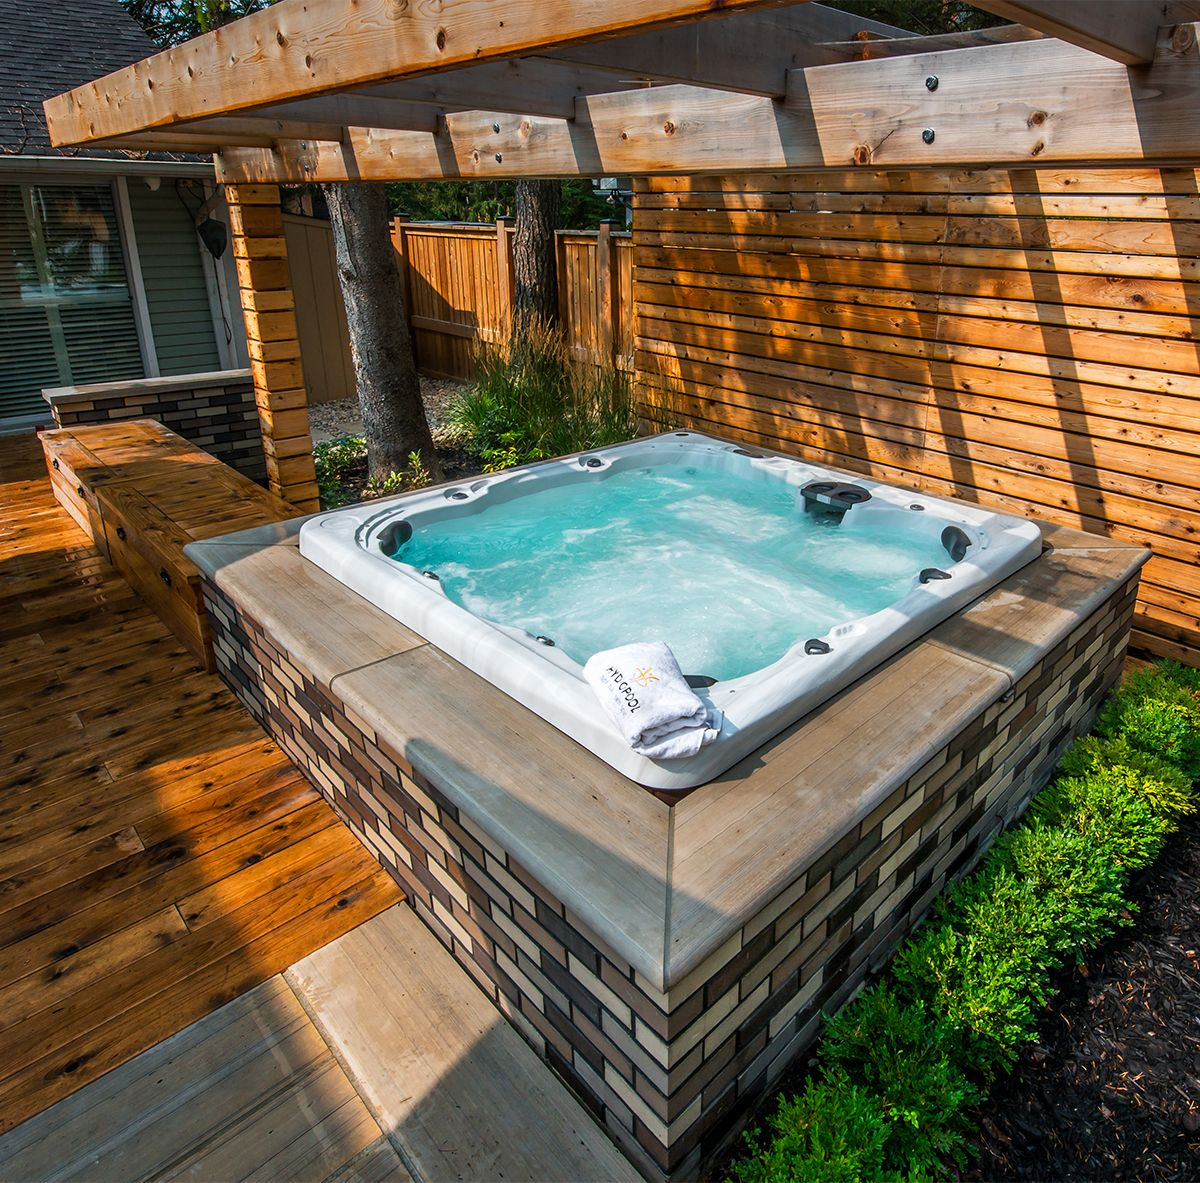 small resolution of the wood and brick combination of this above ground hot tub install is beautifully done